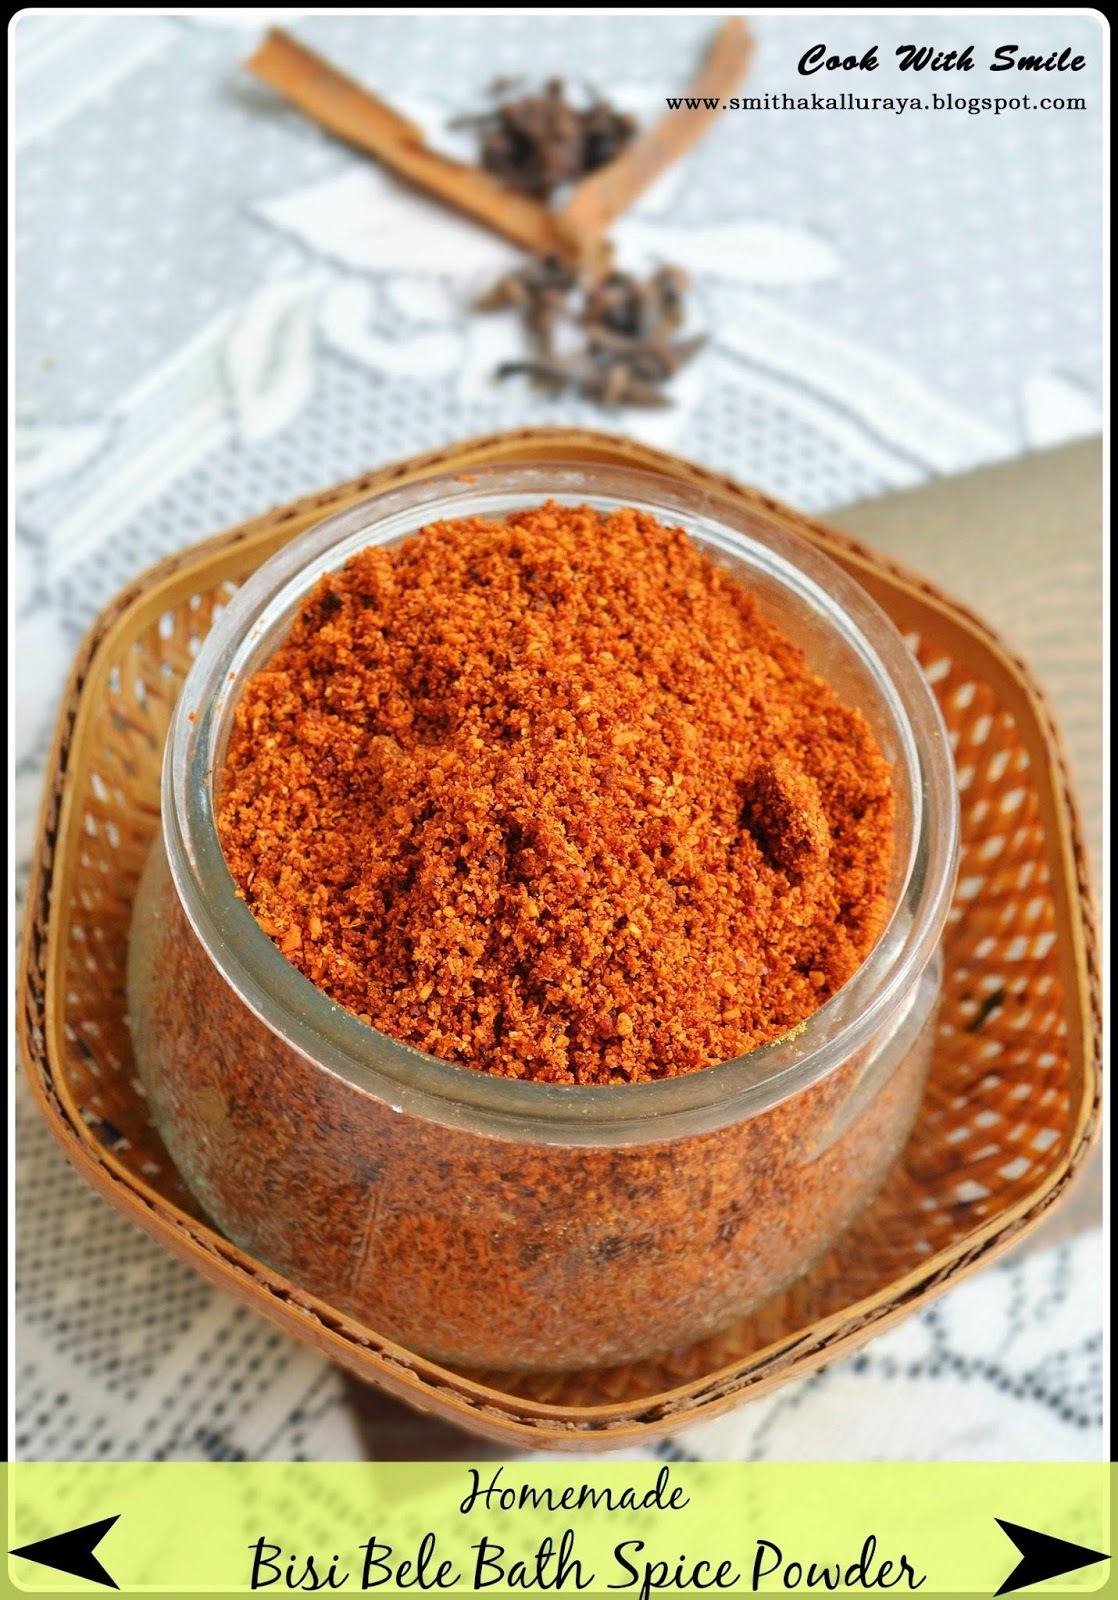 BISI BELE BATH POWDER / HOME MADE BISI BELE BATH SPICE POWDER - AUTHENTIC KARNATAKA STYLE